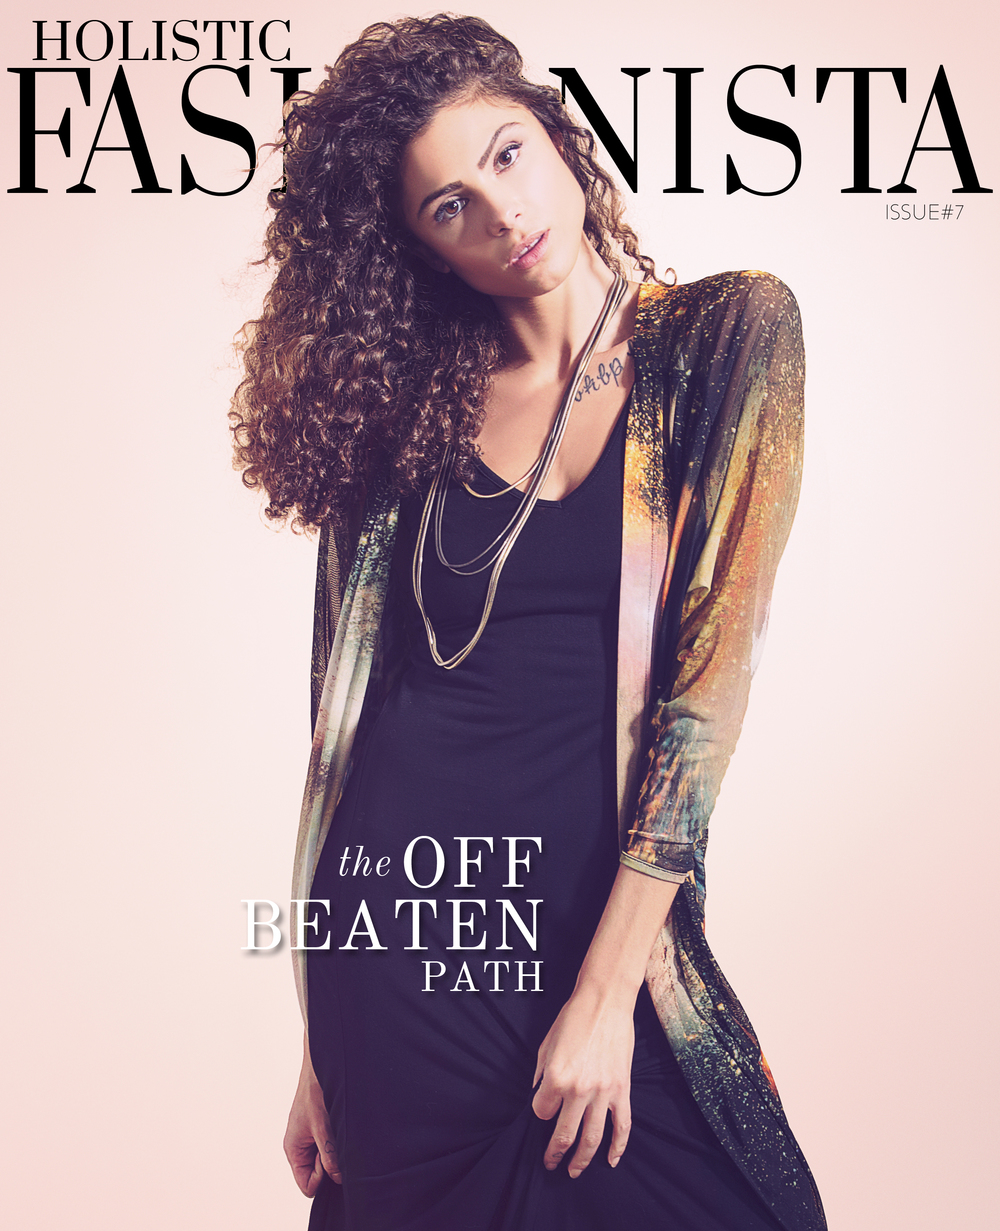 Holistic Fashionista Magazine Issue #7